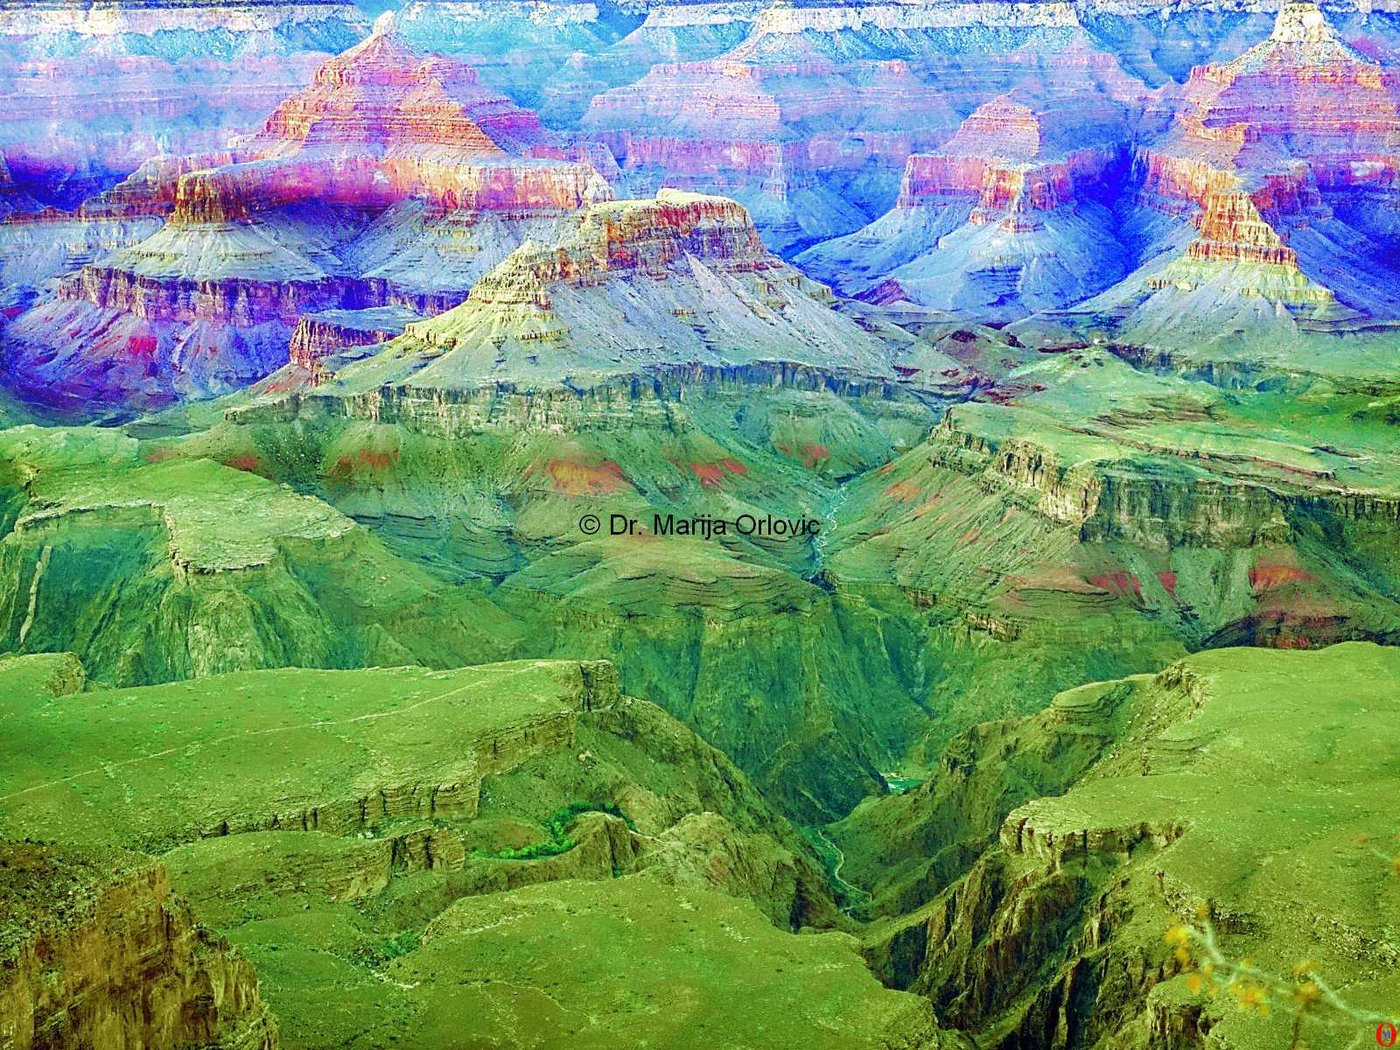 metamorphosys of grand canyon 01